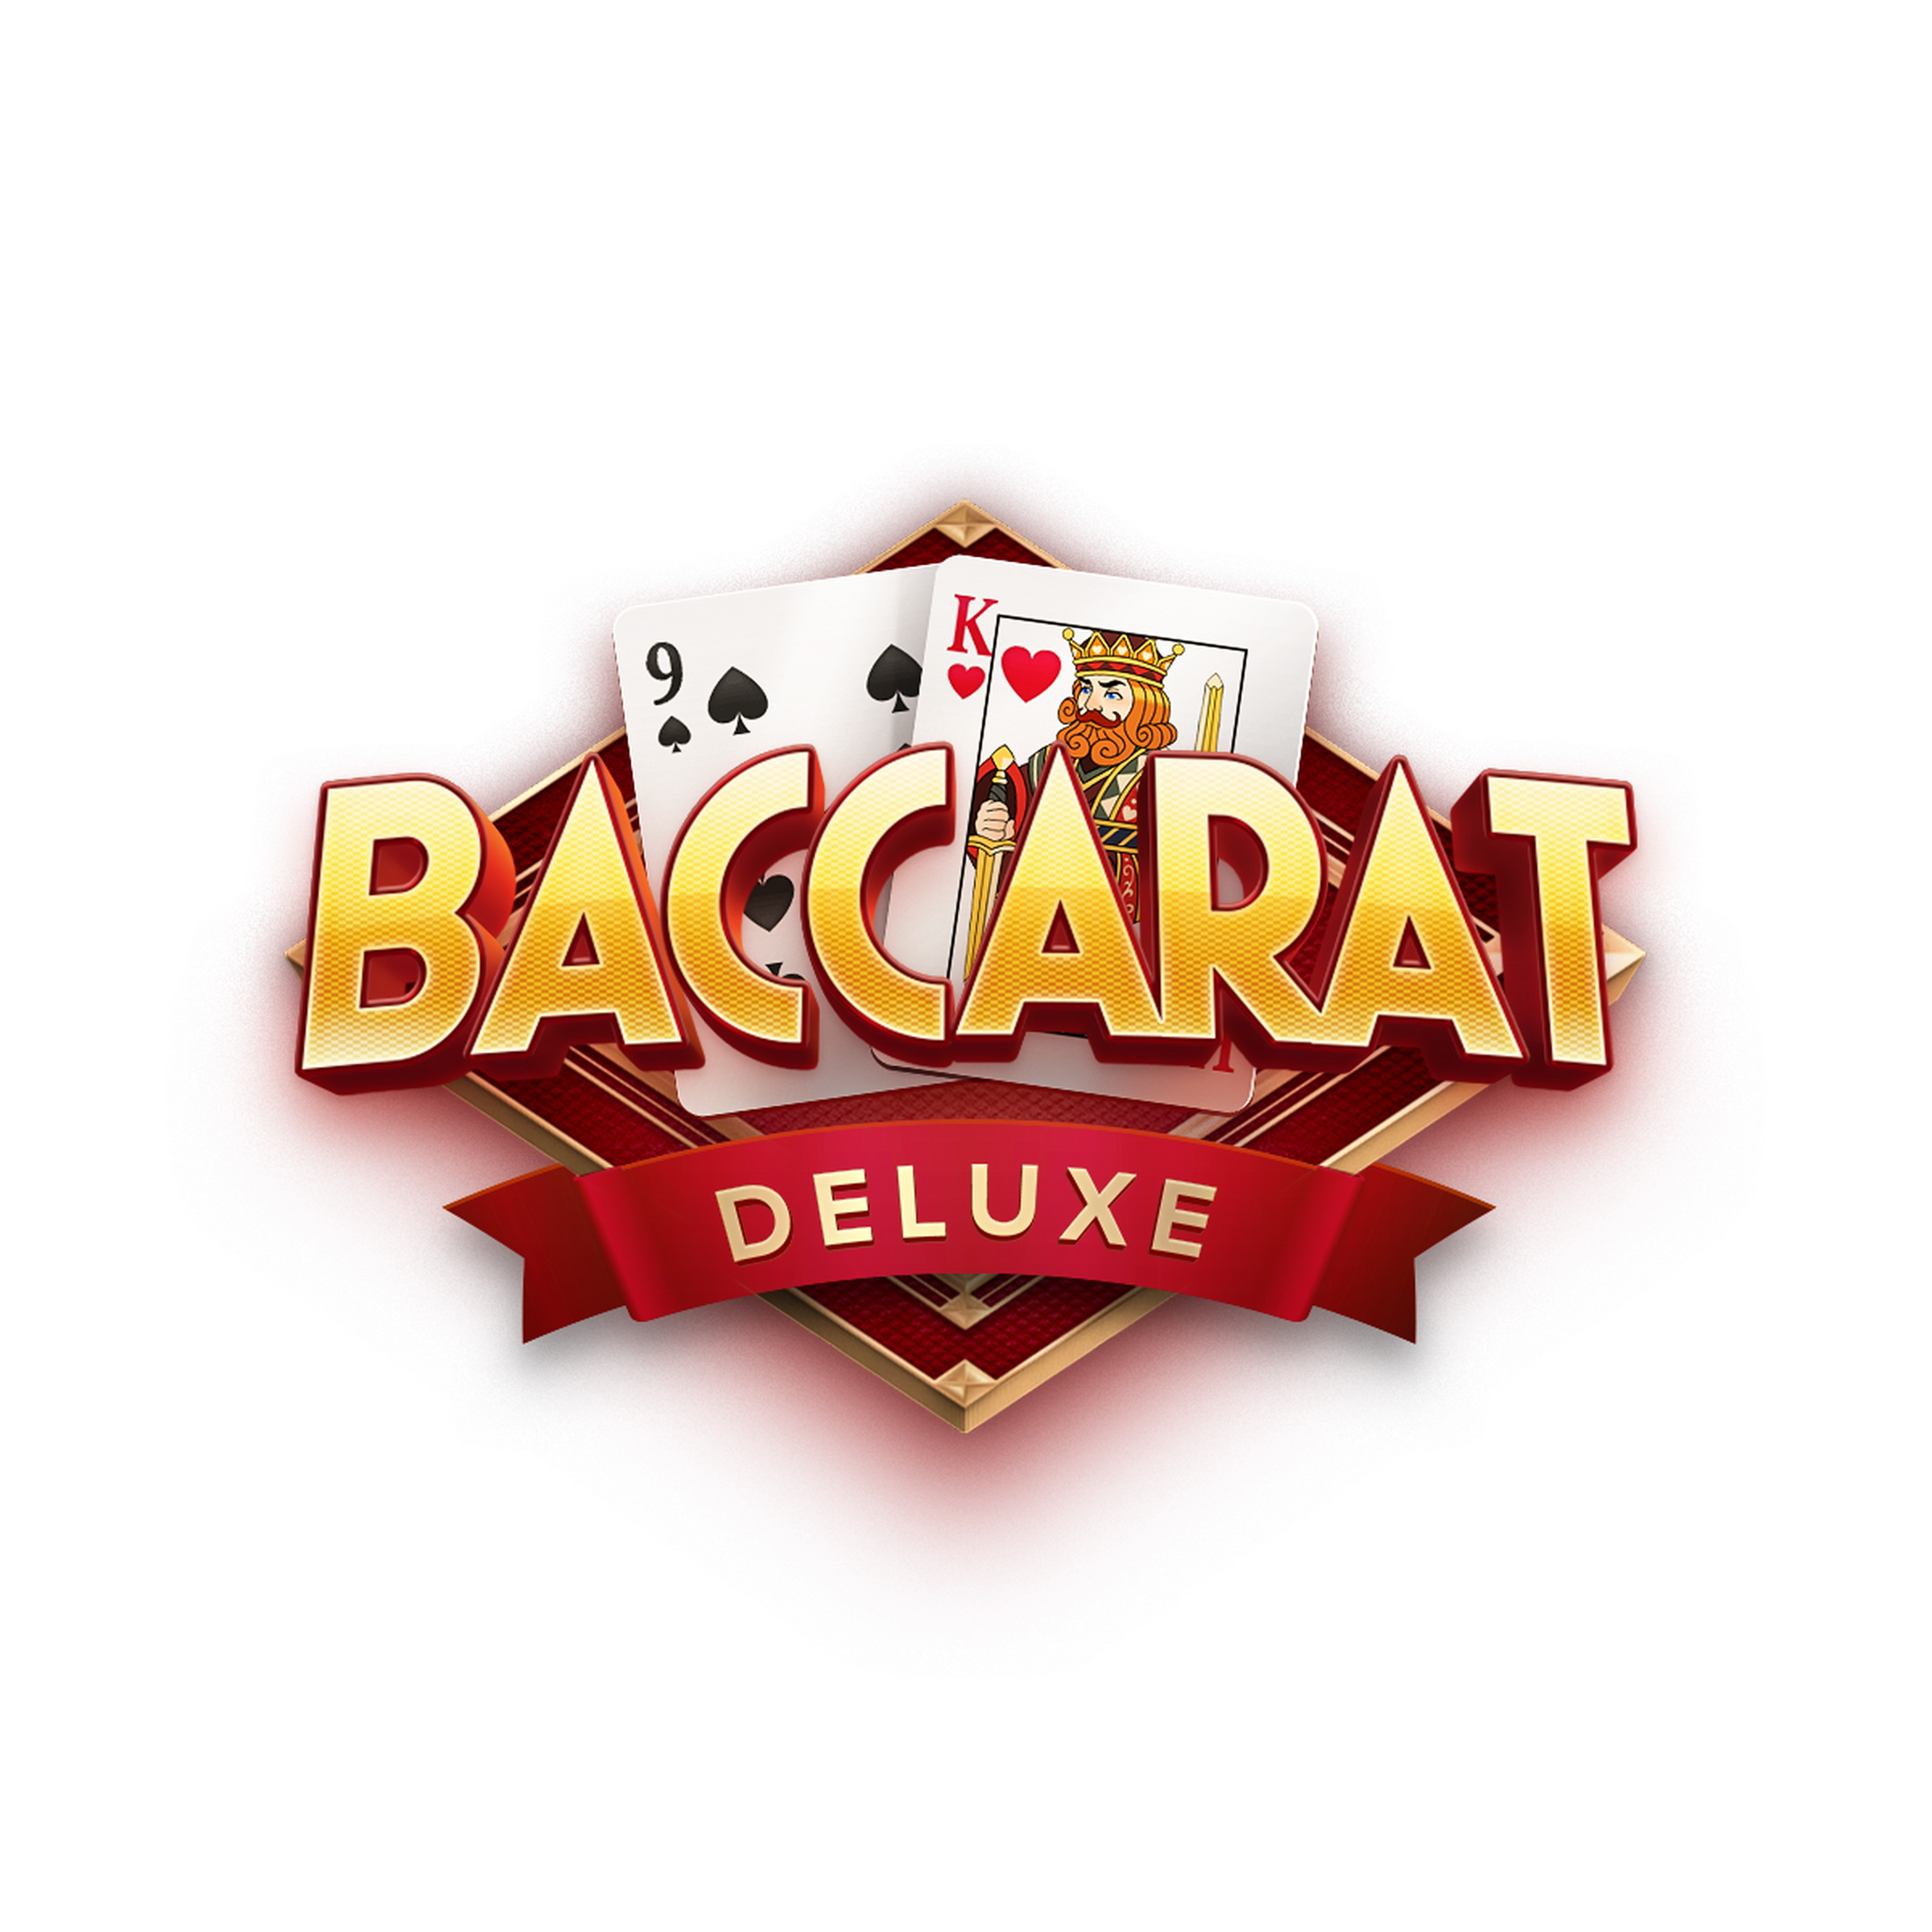 The Baccarat Deluxe (PG Soft) Online Slot Demo Game by PG Soft